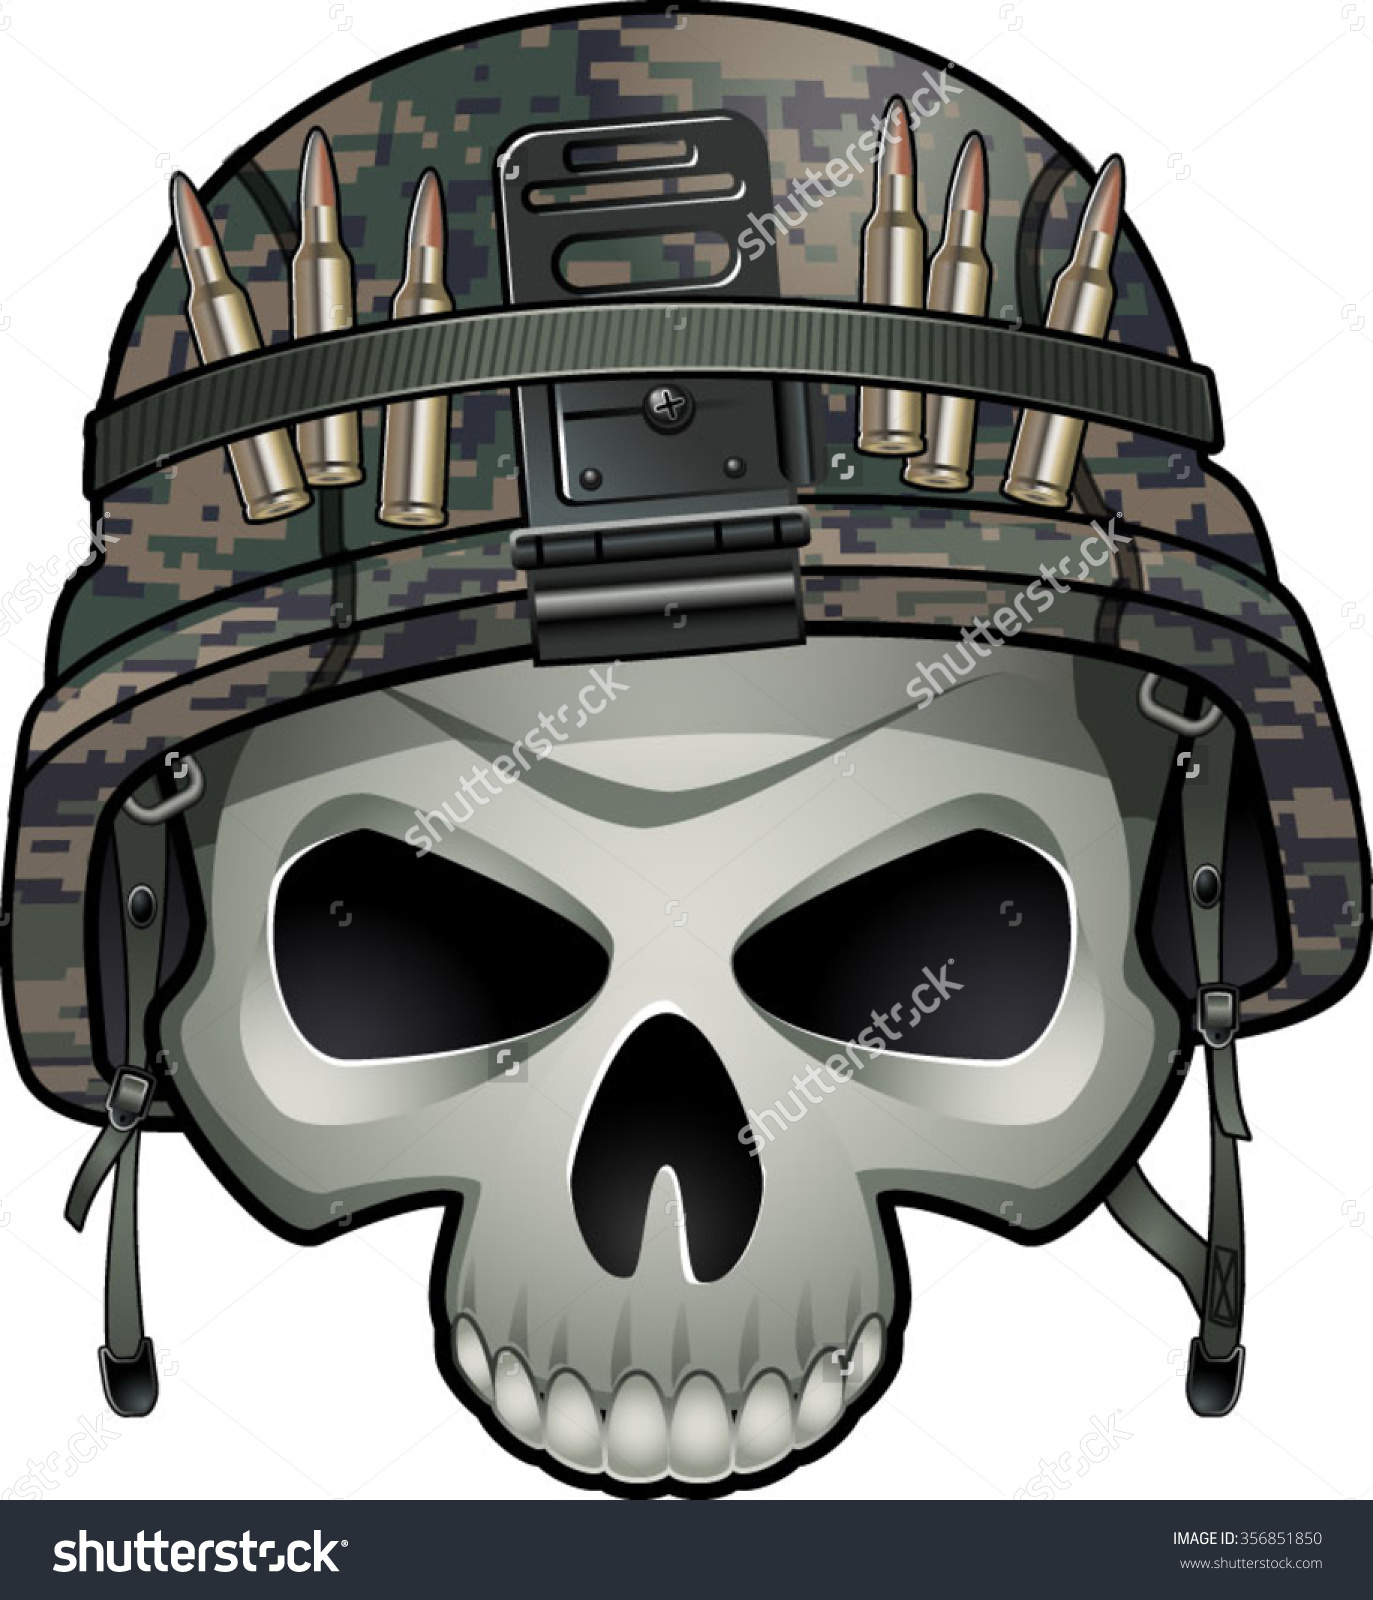 Military Skull Wearing Kevlar Helmet Stock Vector 356851850.